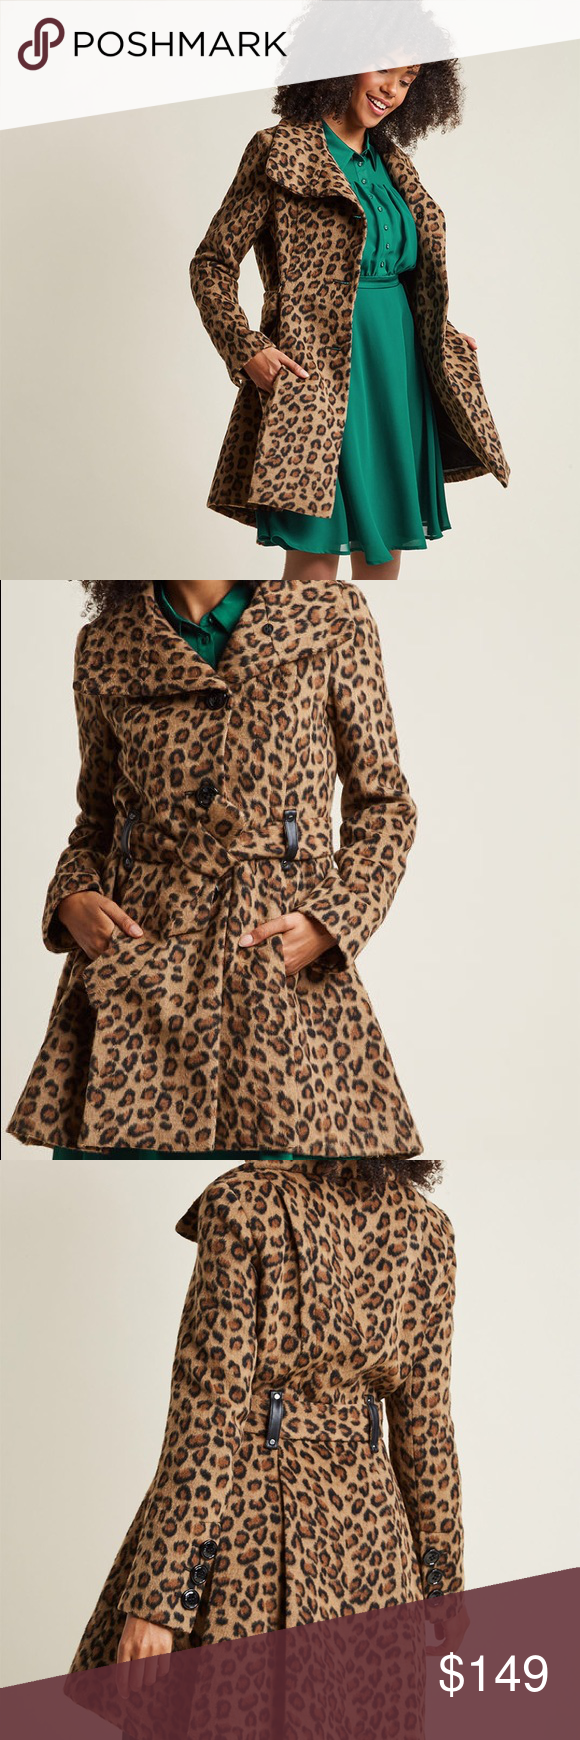 d4b7226805068 Steve Madden Winterberry Tart Wild Coat sz Medium Steve Madden Winterberry  Tart Wild Coat sz Medium